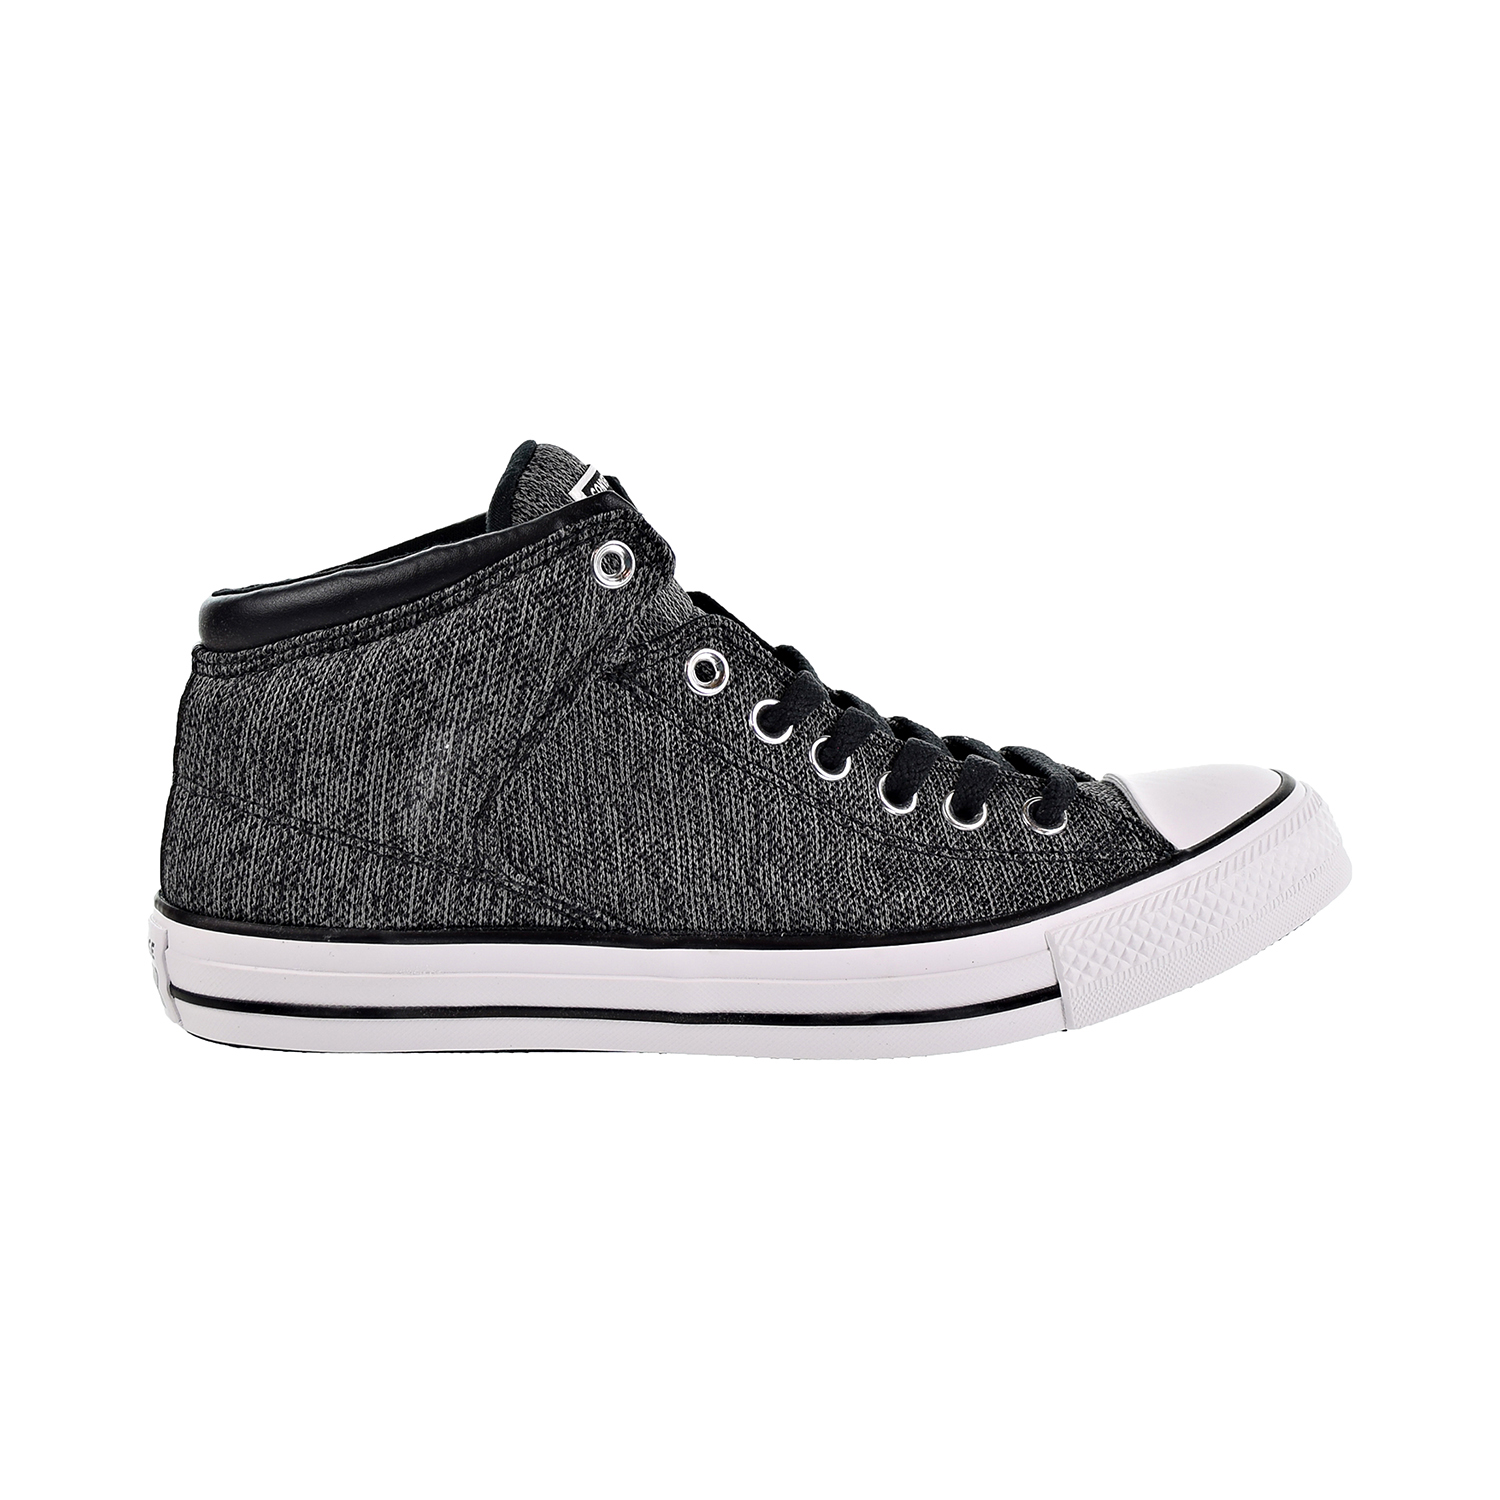 61601531be1 Details about Converse Chuck Taylor All Star High Street Unisex Mens Shoes  Mason White 161515F